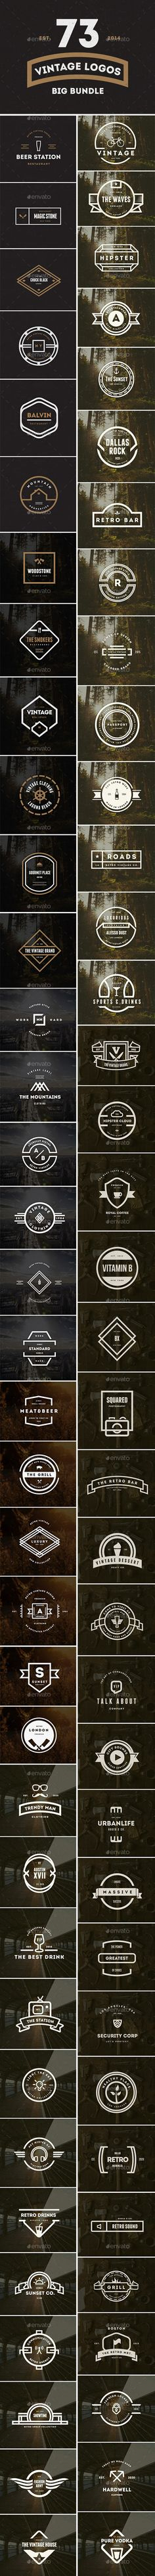 73 Vintage Labels & Badges Logos Bundle Template PSD | Buy and Download…